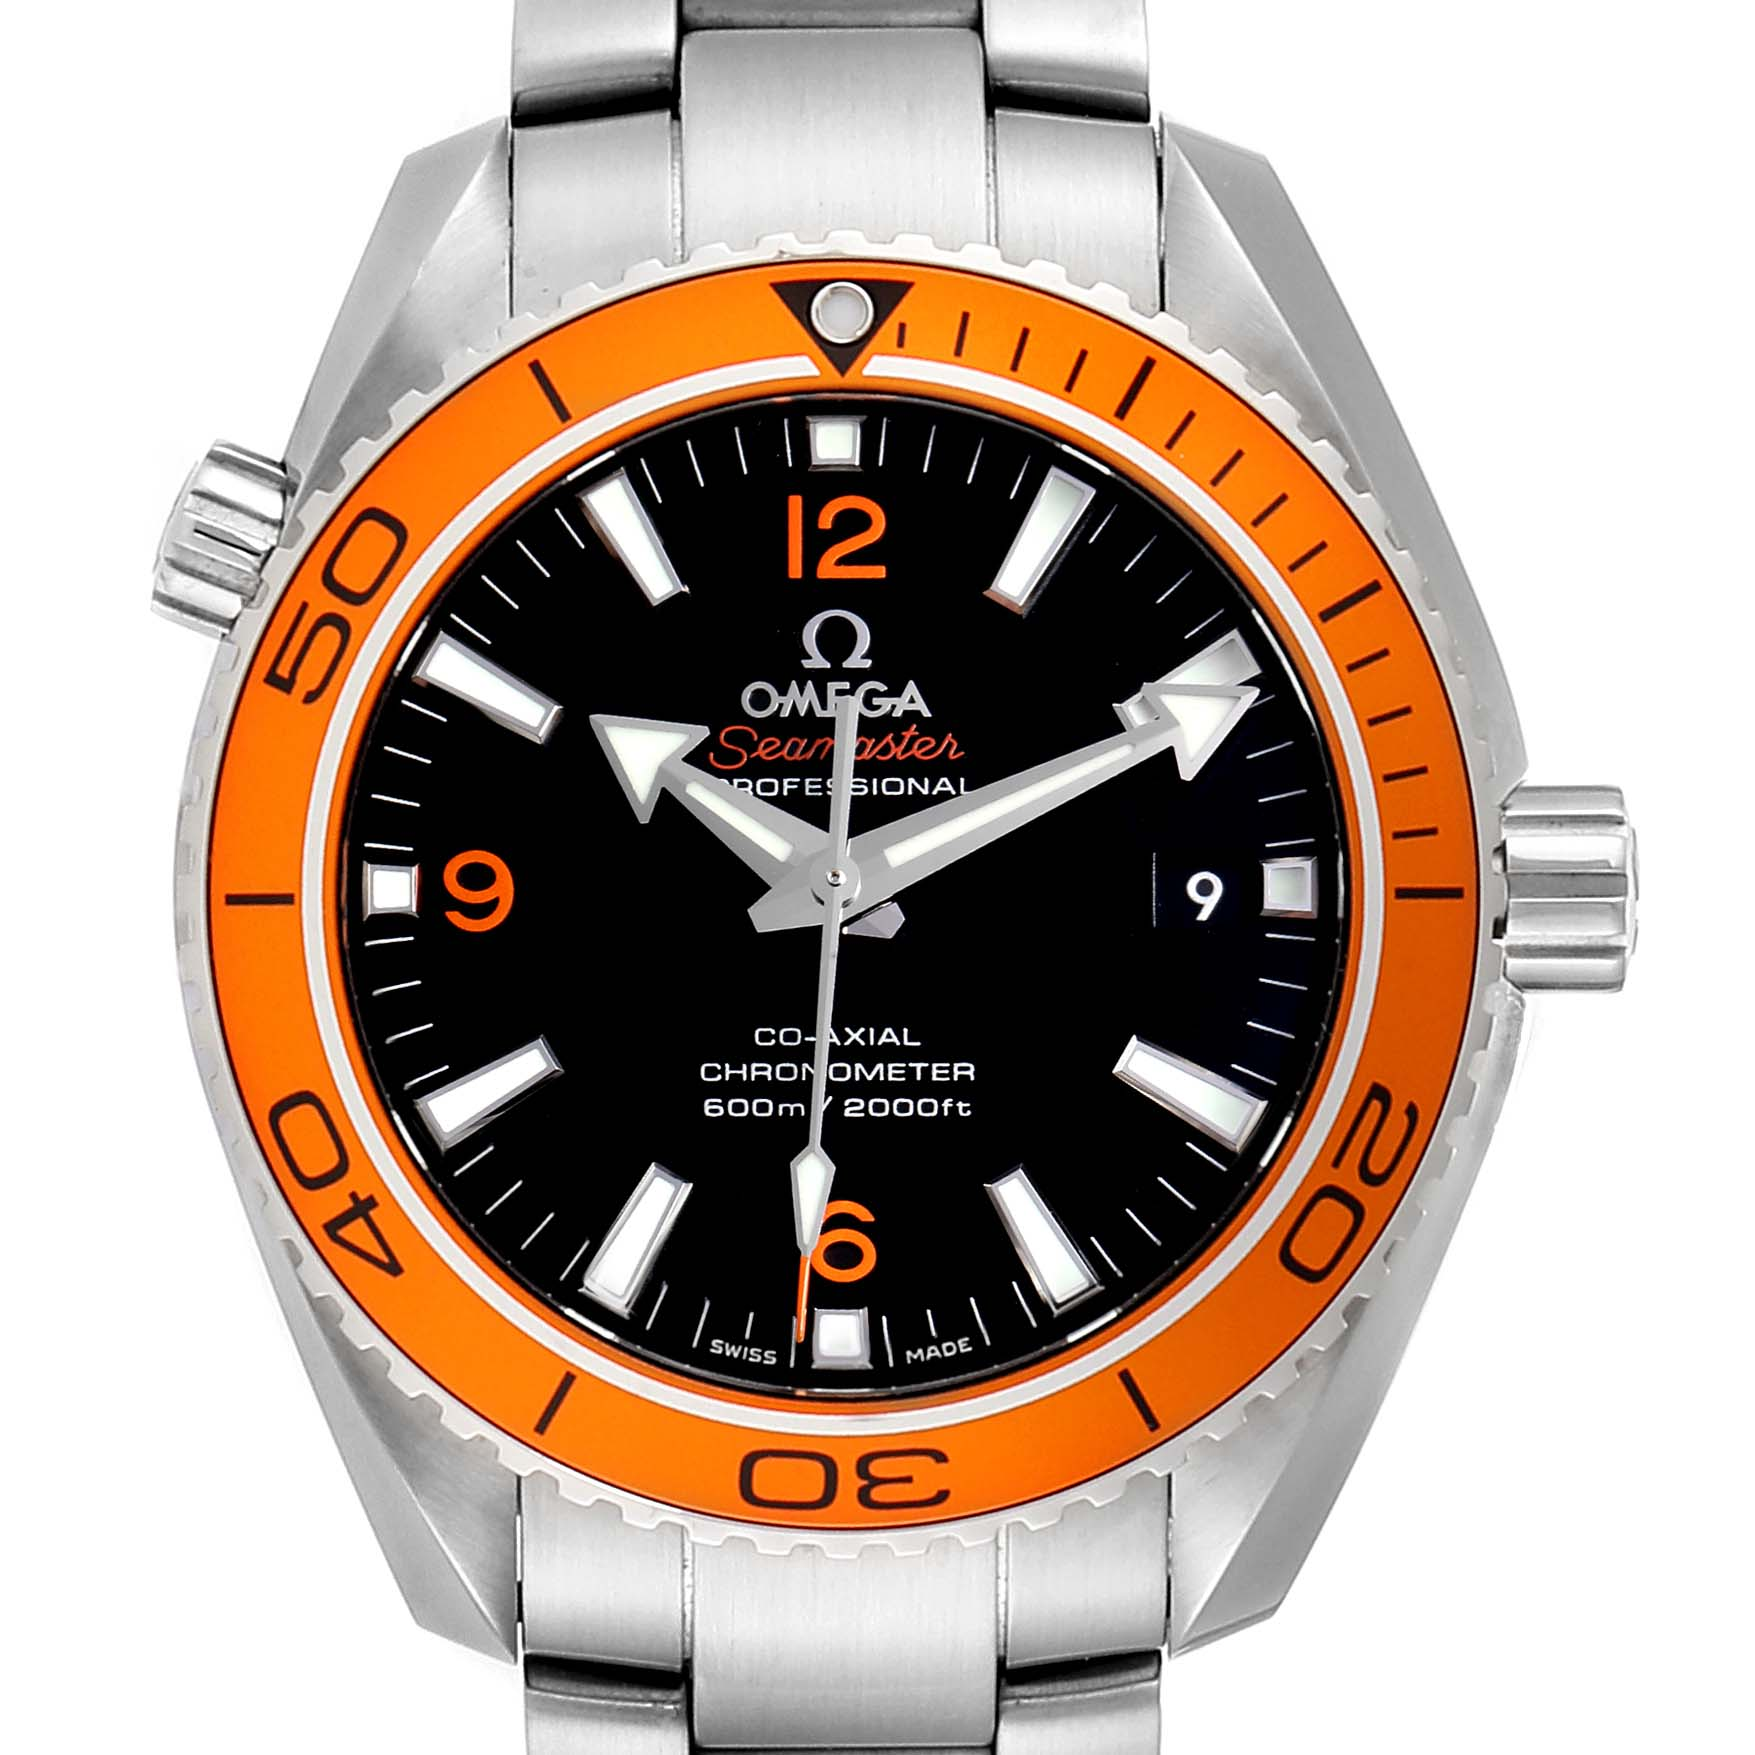 Omega Seamaster Planet Ocean Orange Bezel Watch 232.30.42.21.01.002